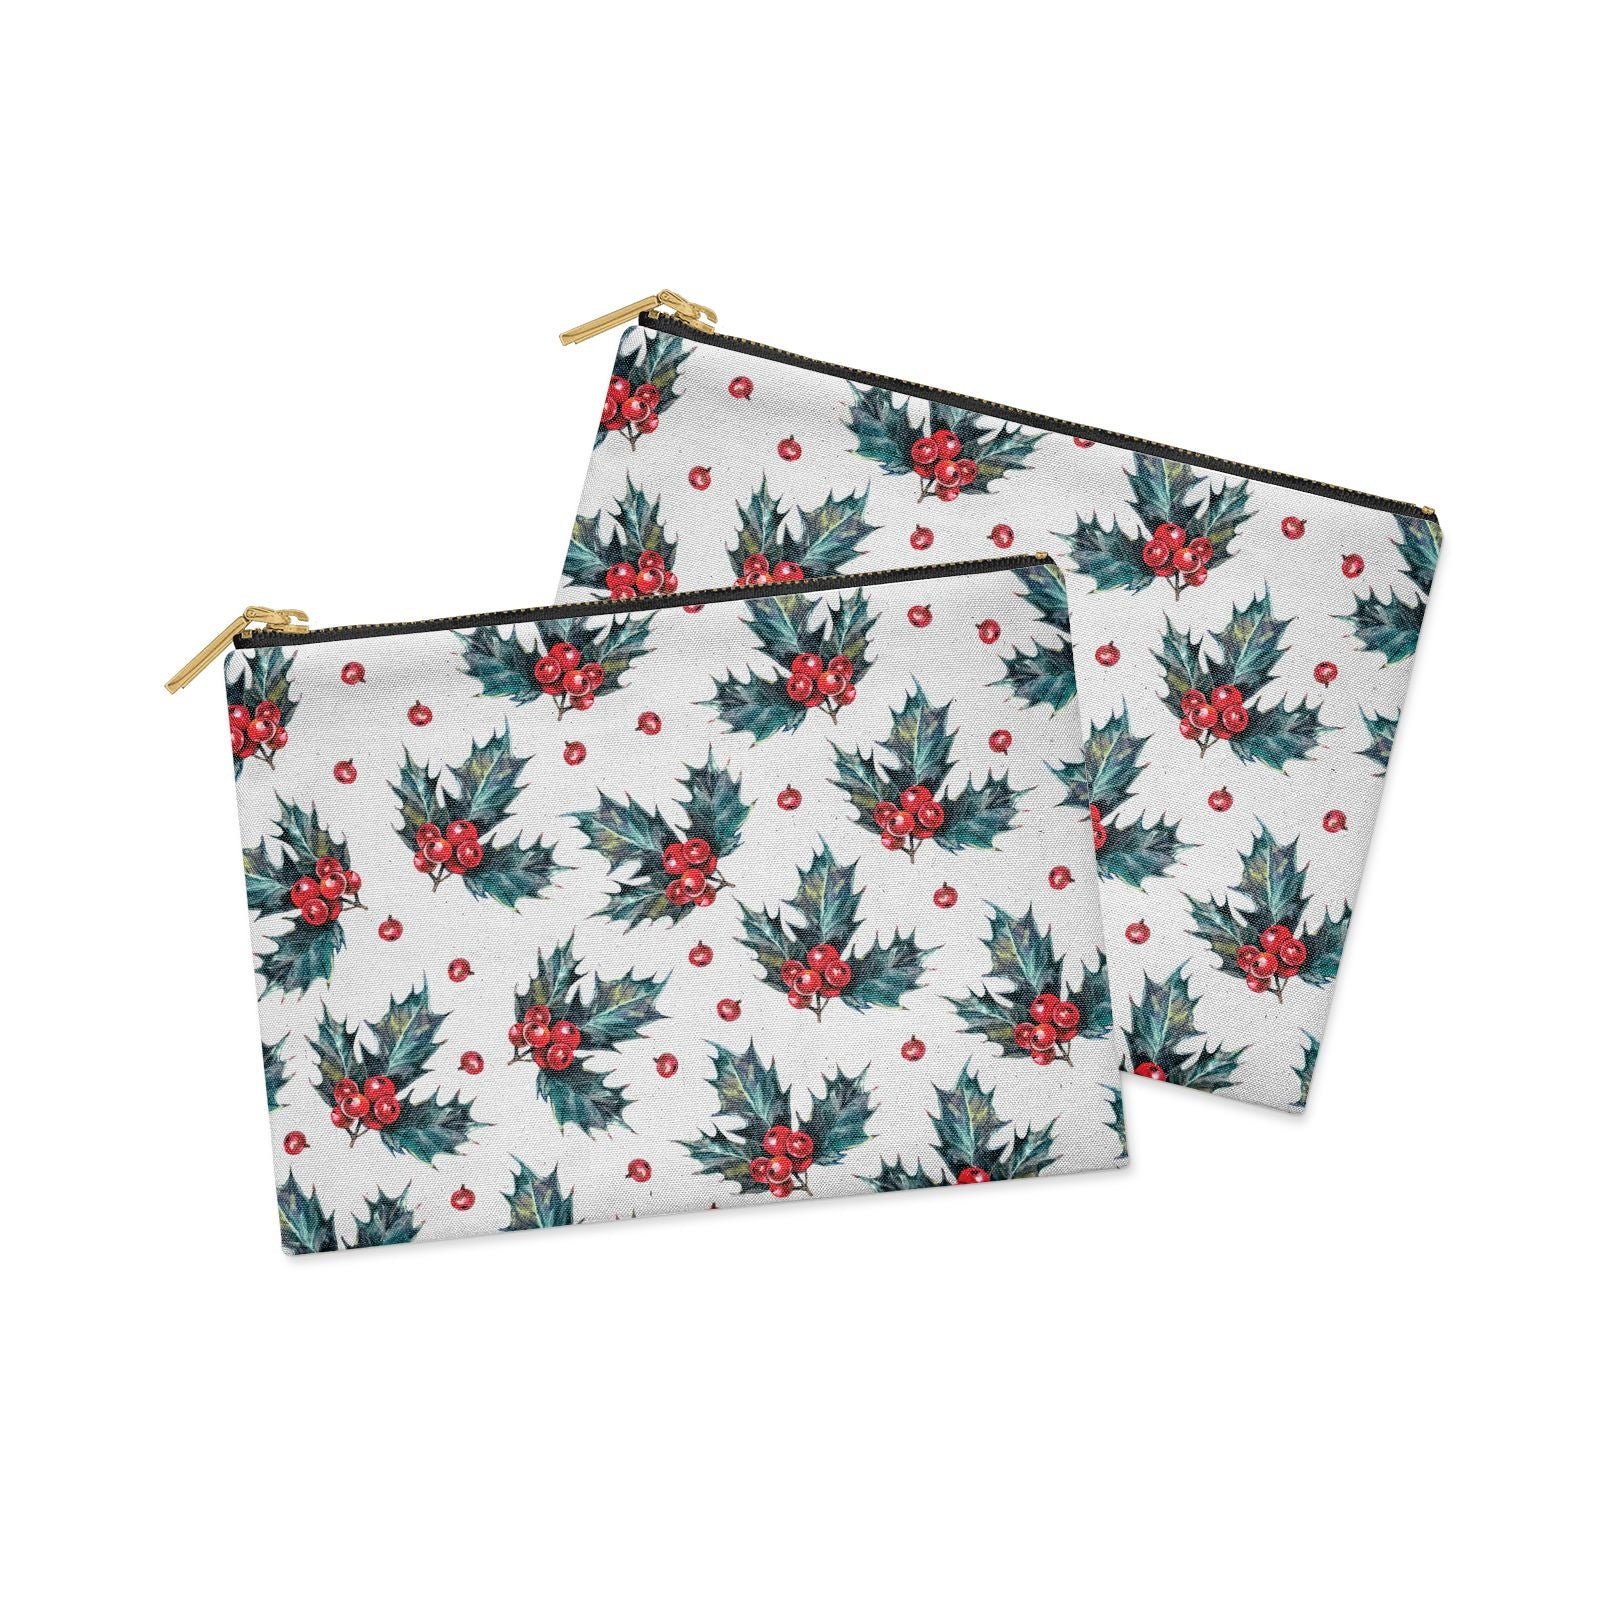 Holly berry Clutch Bag Zipper Pouch Alternative View